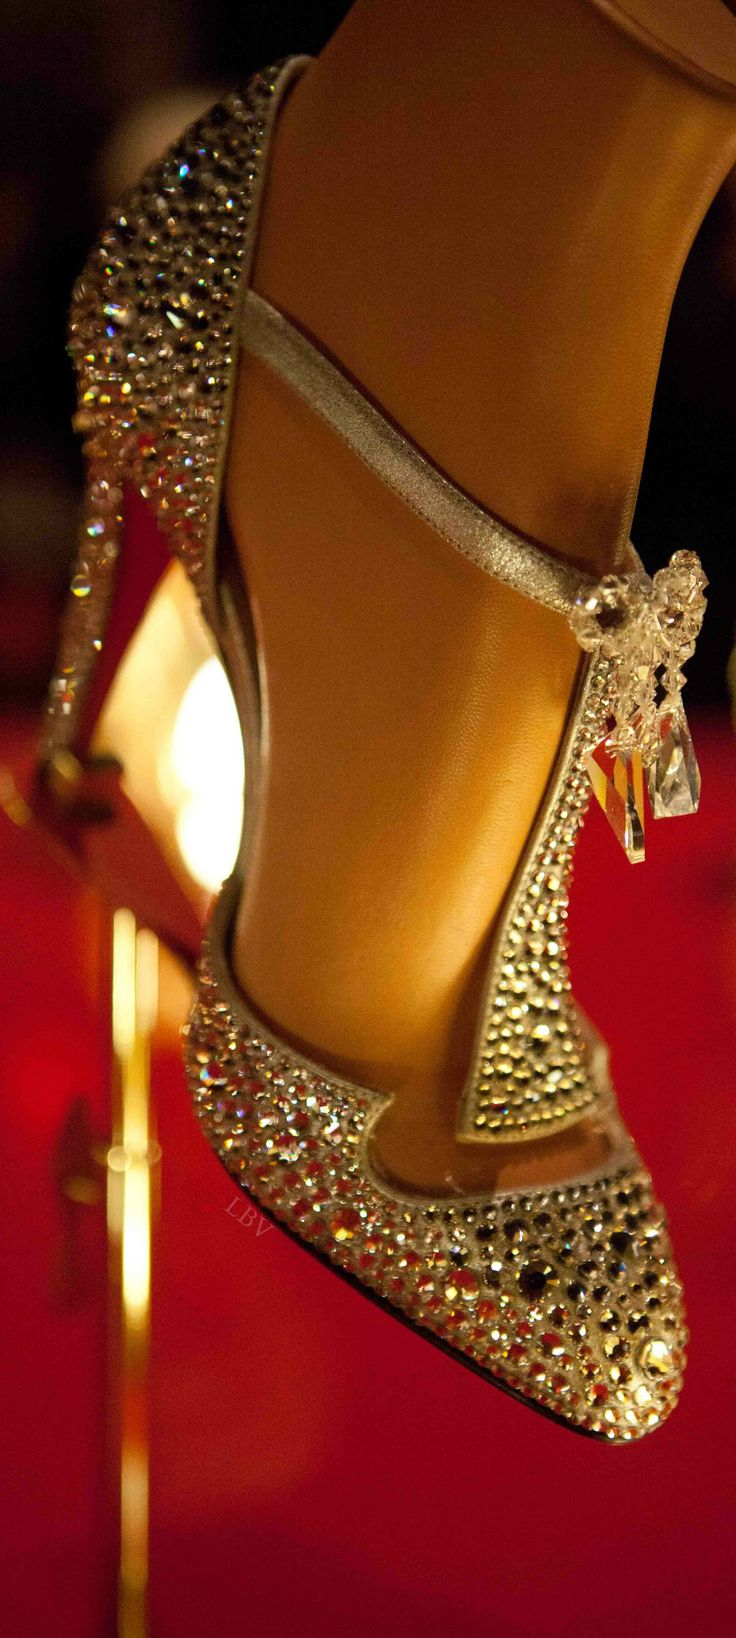 Great Gatsby style Louboutin | LBV ♥✤ www.SocietyOfWomenWhoLoveShoes.org https://www.facebook.com/SWWLS.Dallas Instagram @SocietyOfWomenWhoLoveShoes Twitter @ThePowerOfShoes